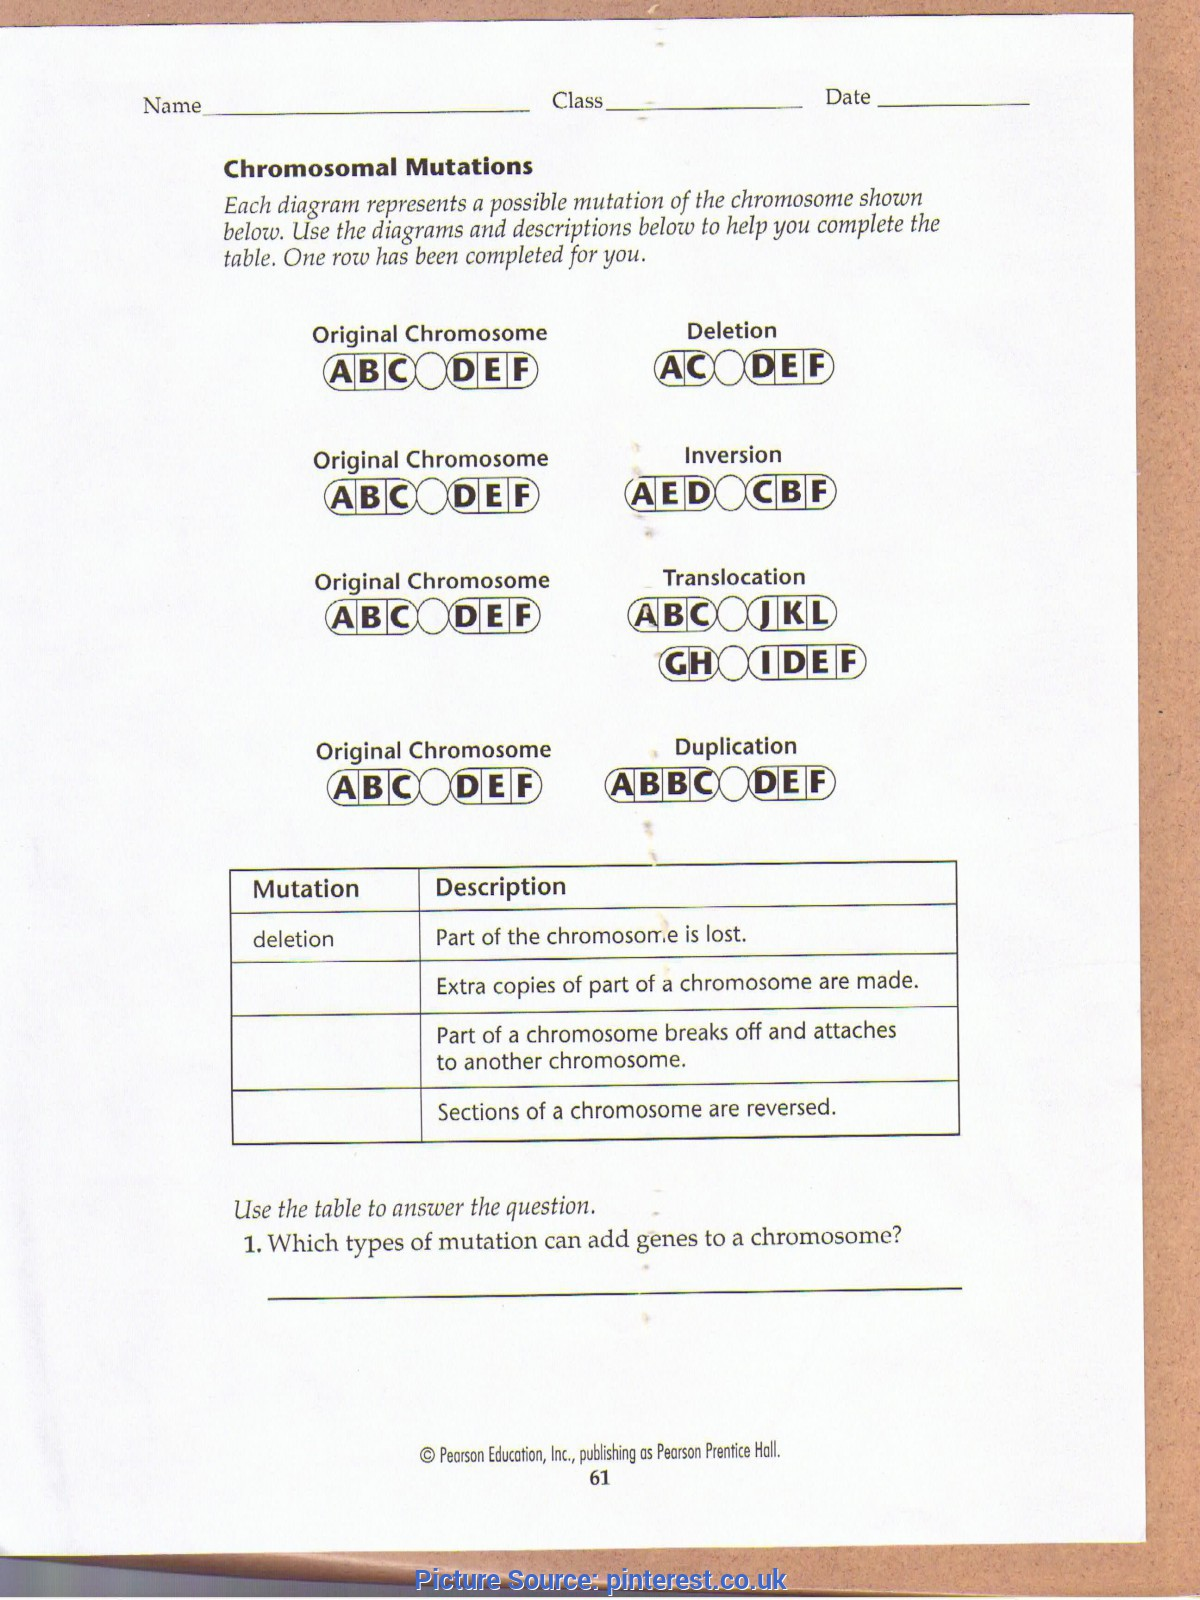 Good Lesson Plan In English Reading In Drafting Lesson Plans Using The Standard Cu Format We Wil